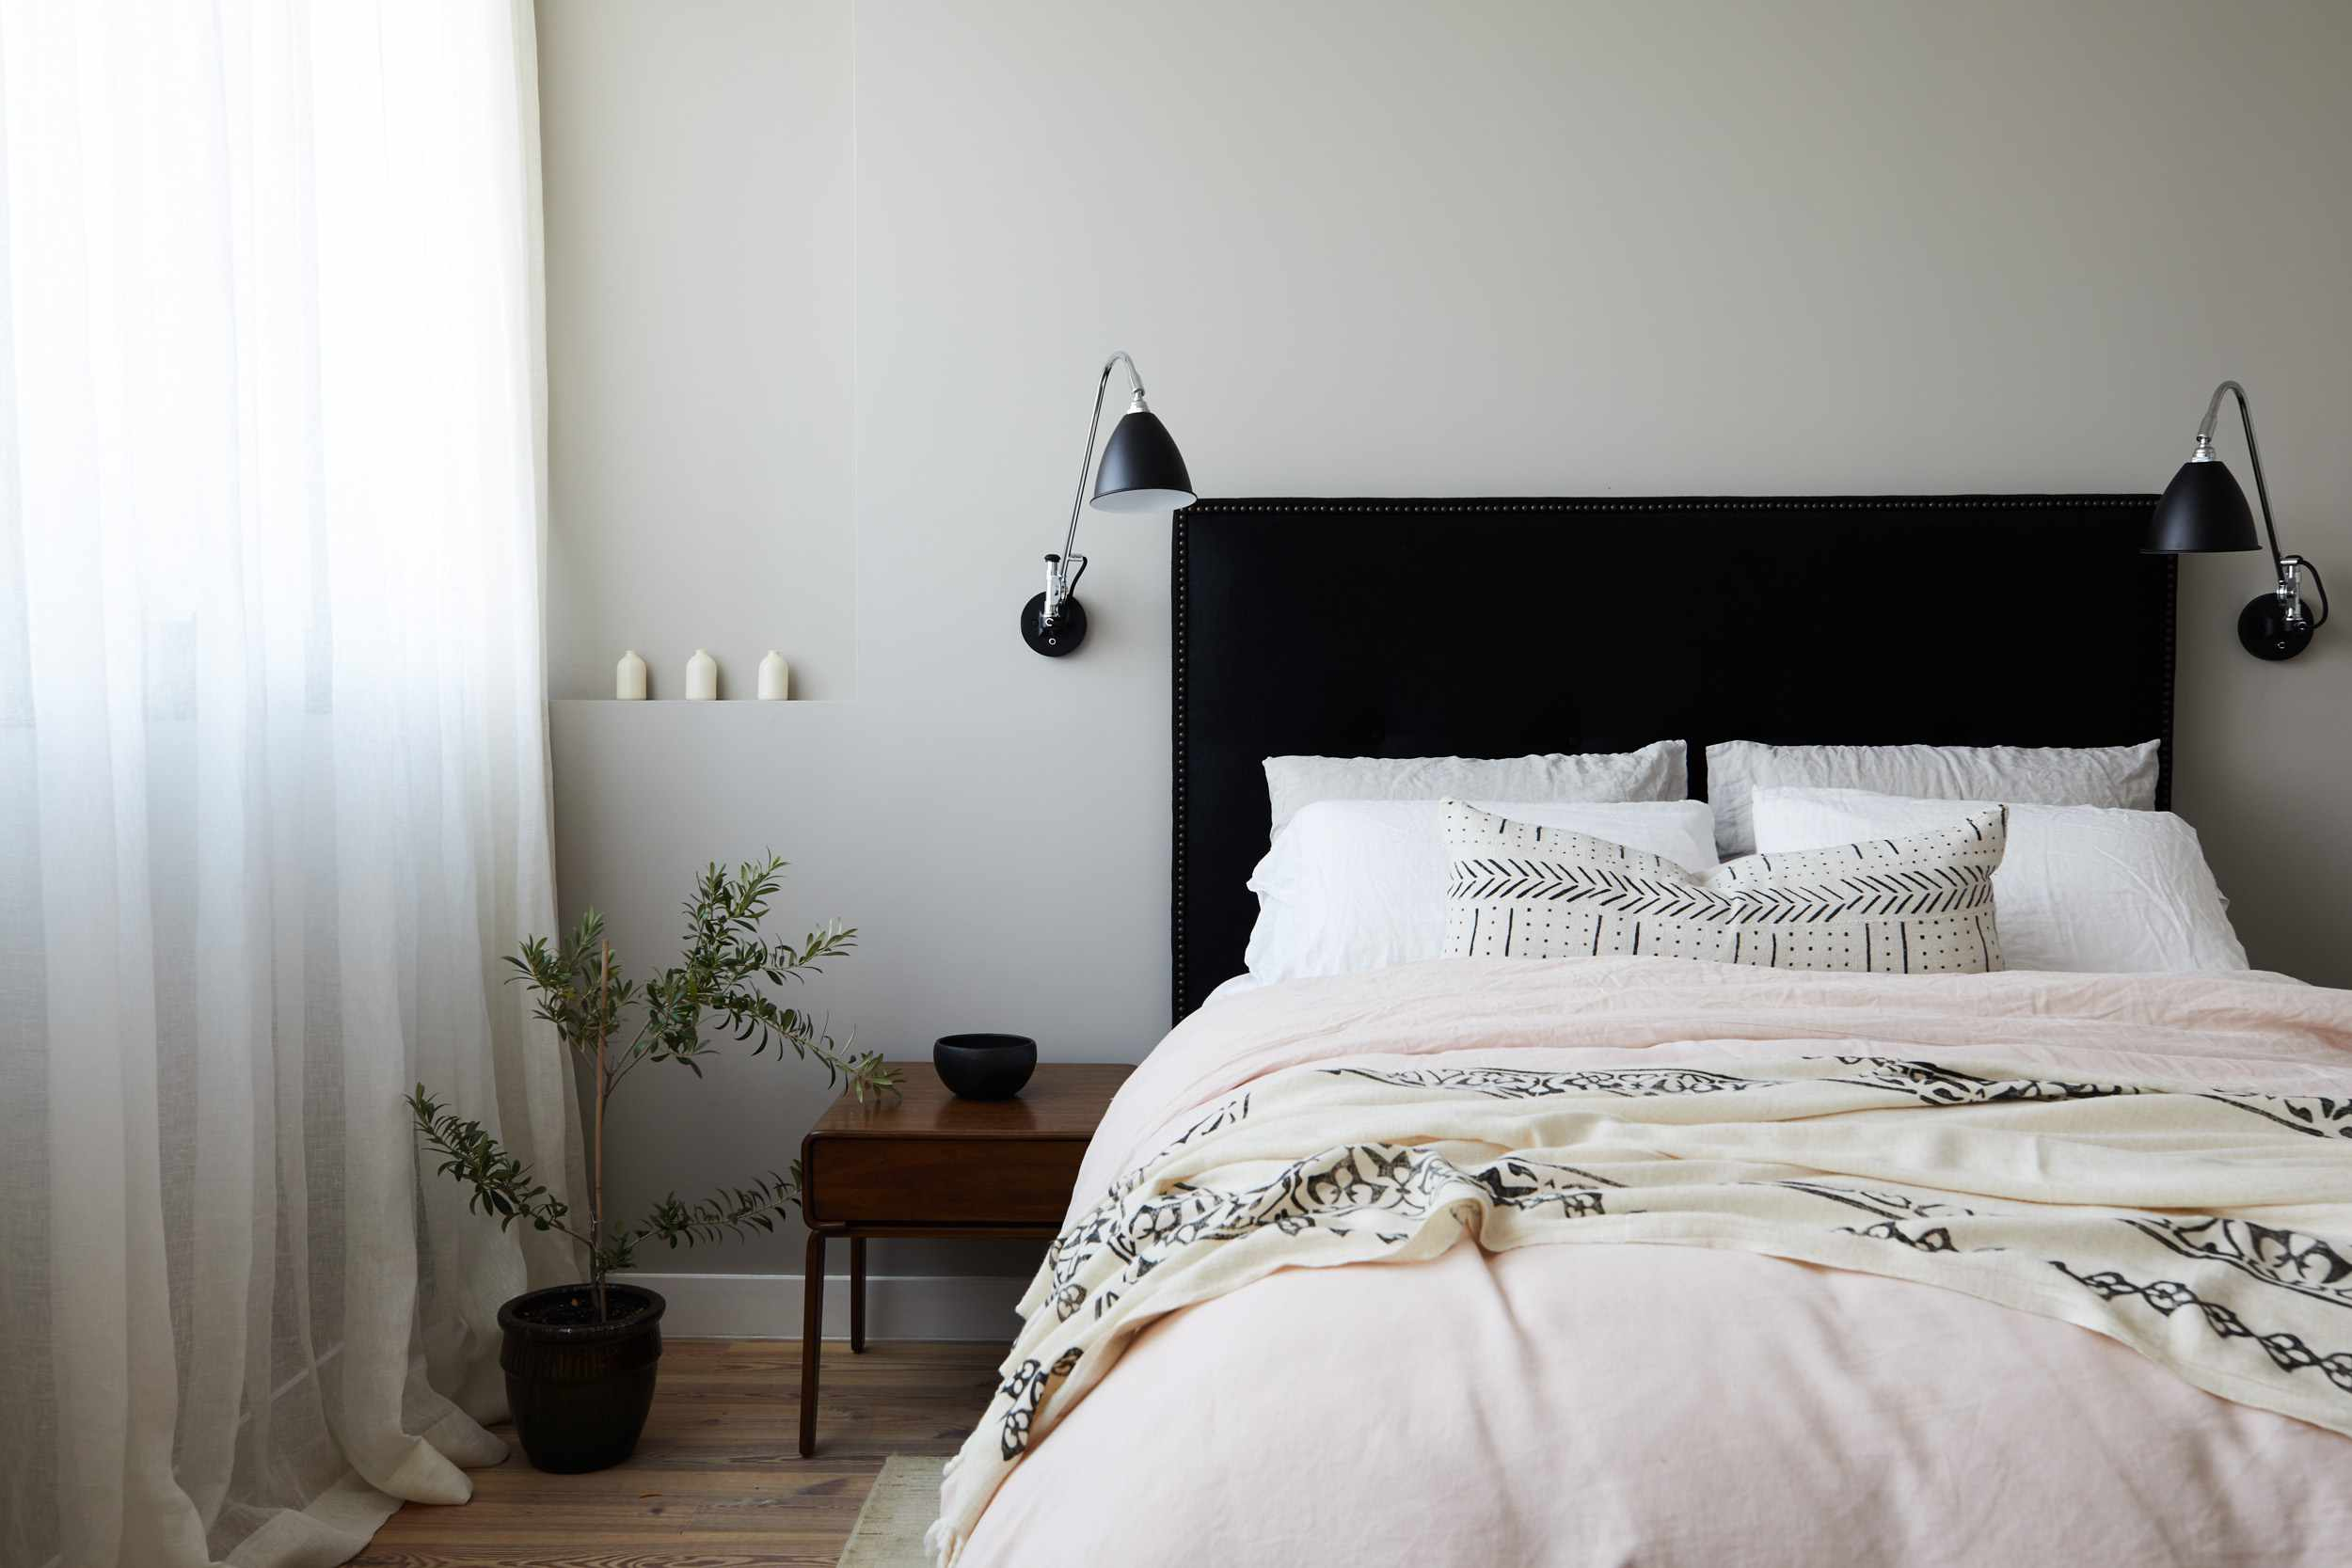 Minimal room with sconces on either side of the bed.